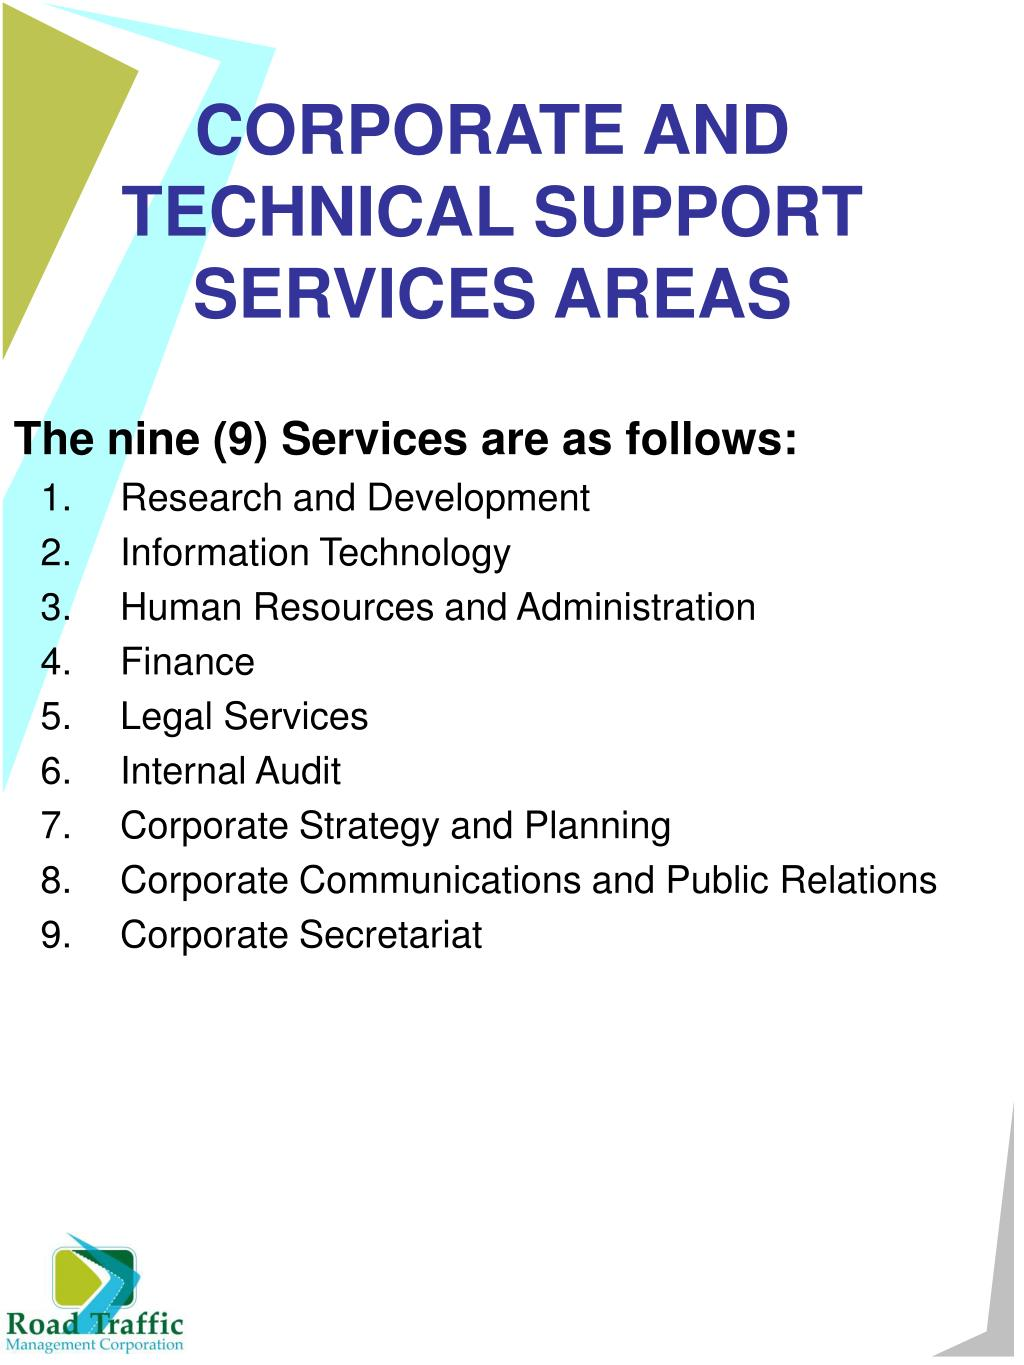 CORPORATE AND TECHNICAL SUPPORT SERVICES AREAS